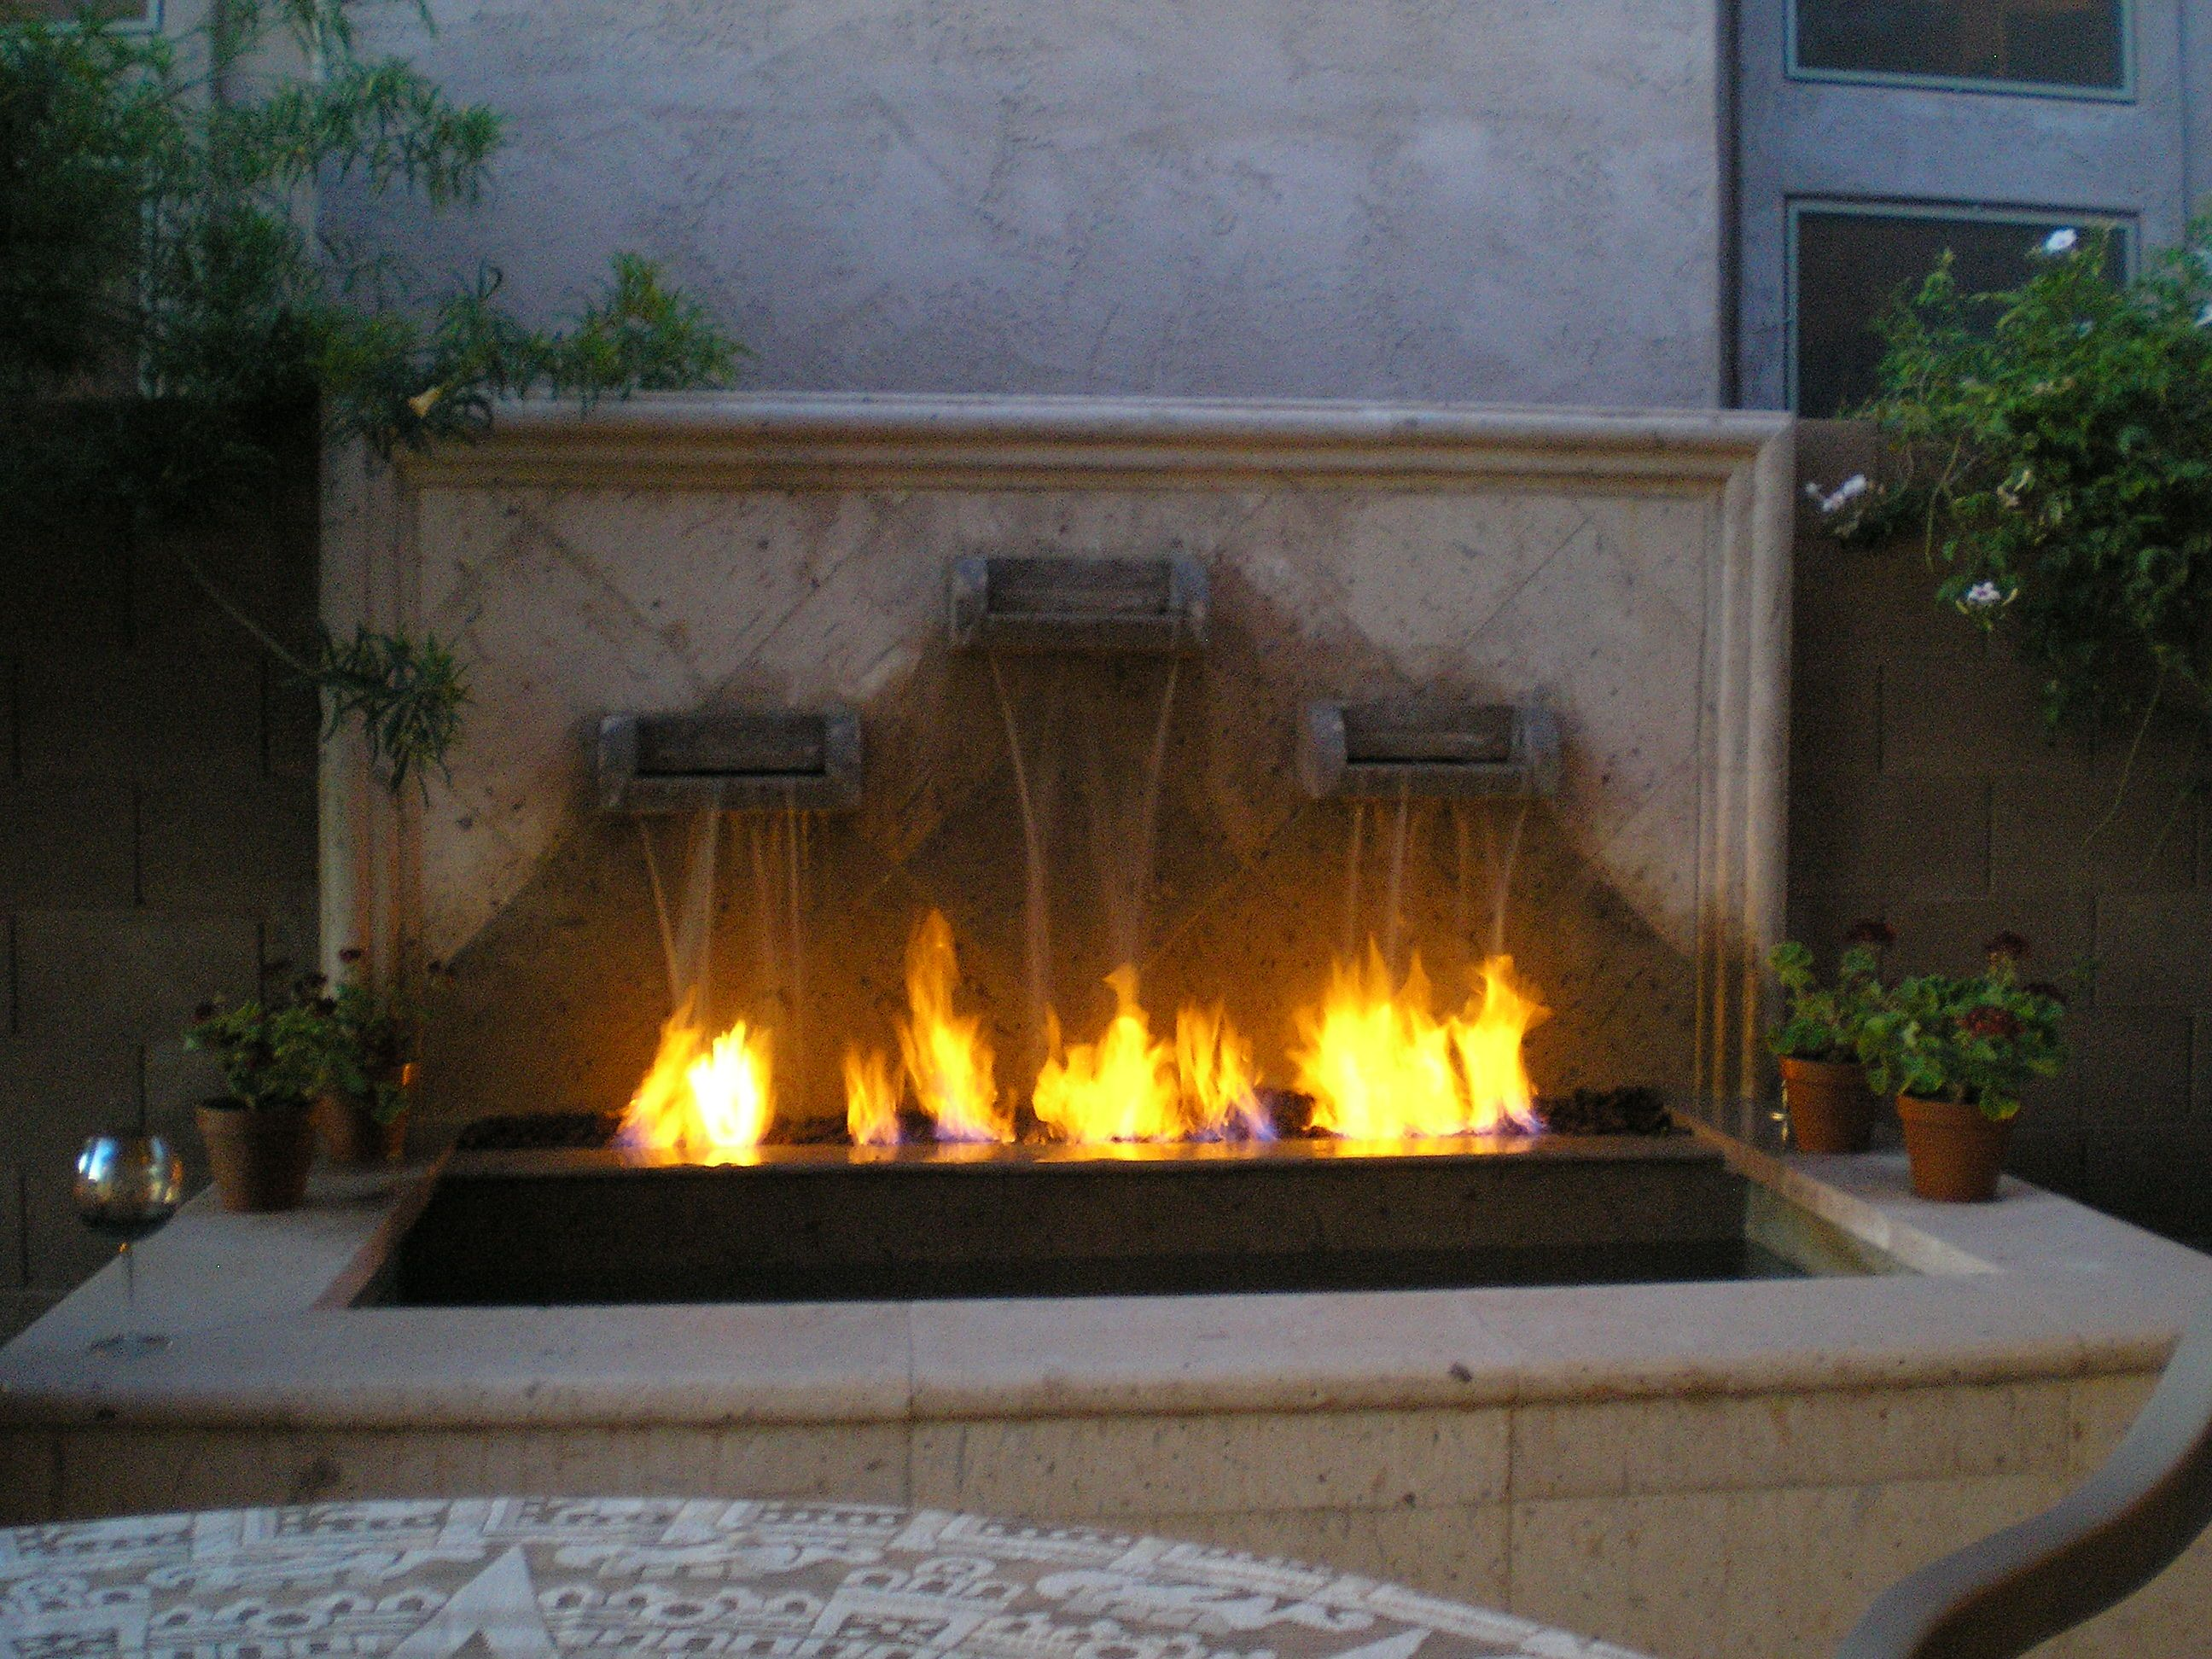 Outdoor Gas Fireplace And Water Fountain